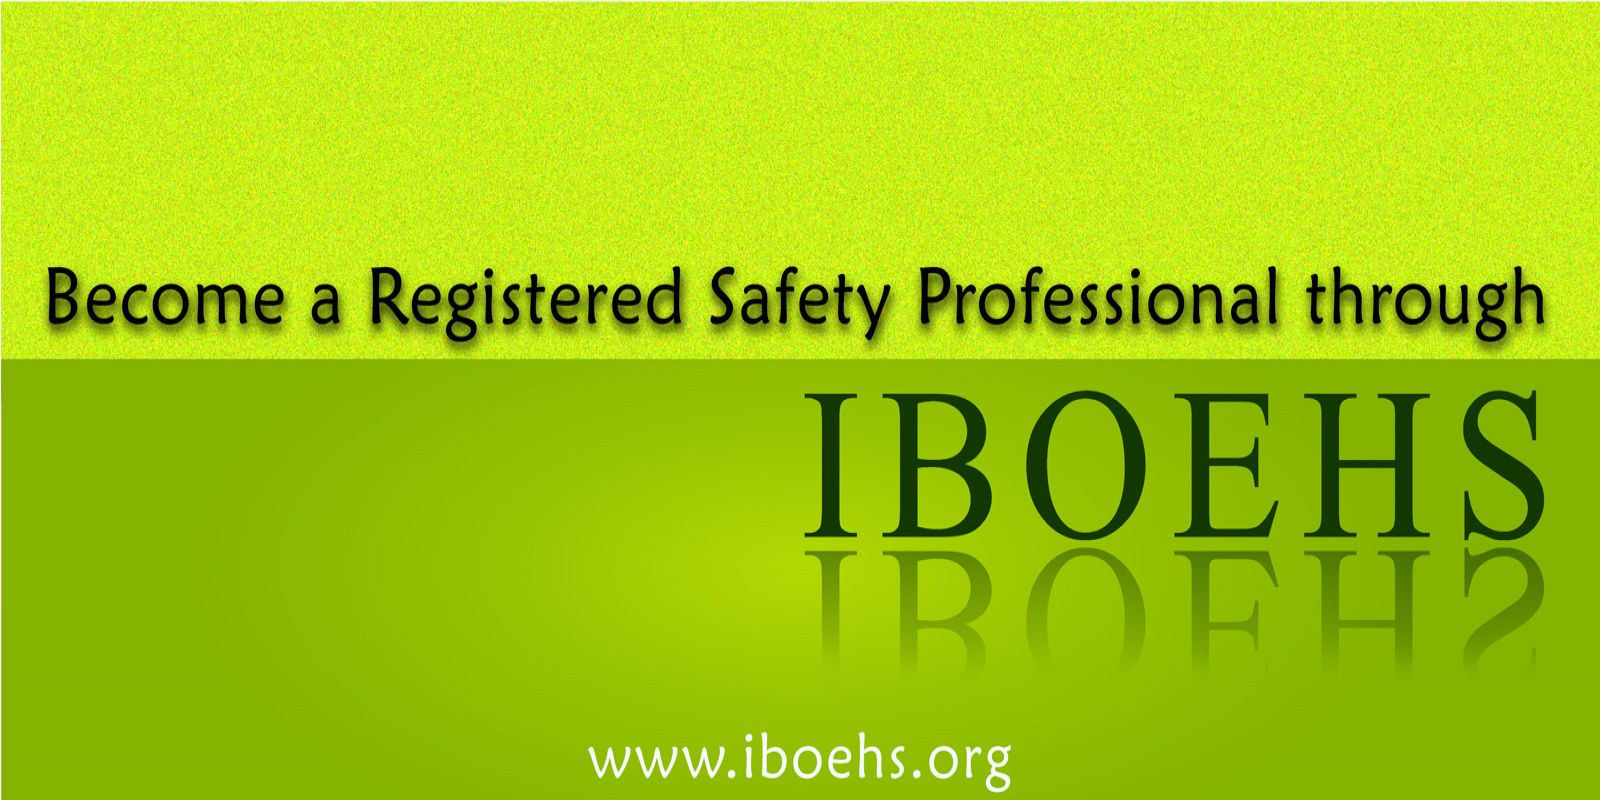 Health and Safety Services in India